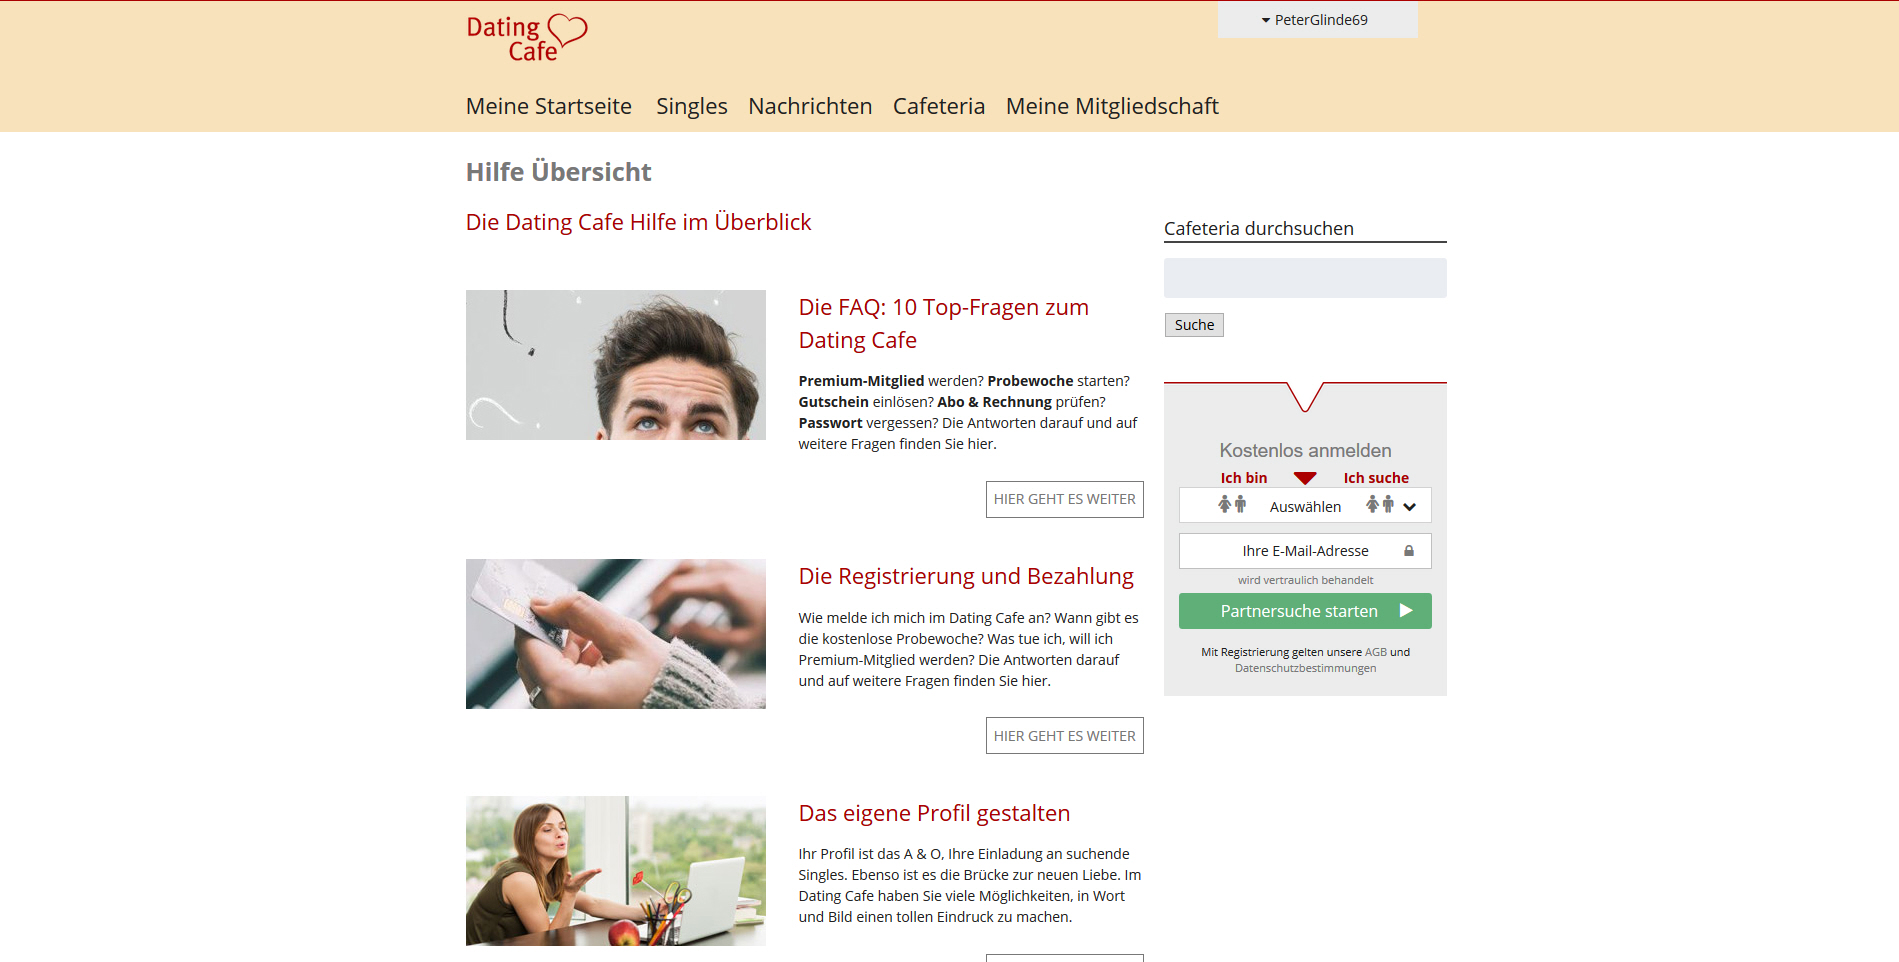 bewertung dating cafe + + + registration for the testas on 6 june 2018, starts on march 19th to 7 may 2018 (only in germany) + + + registration for the testas on 6 june 2018.